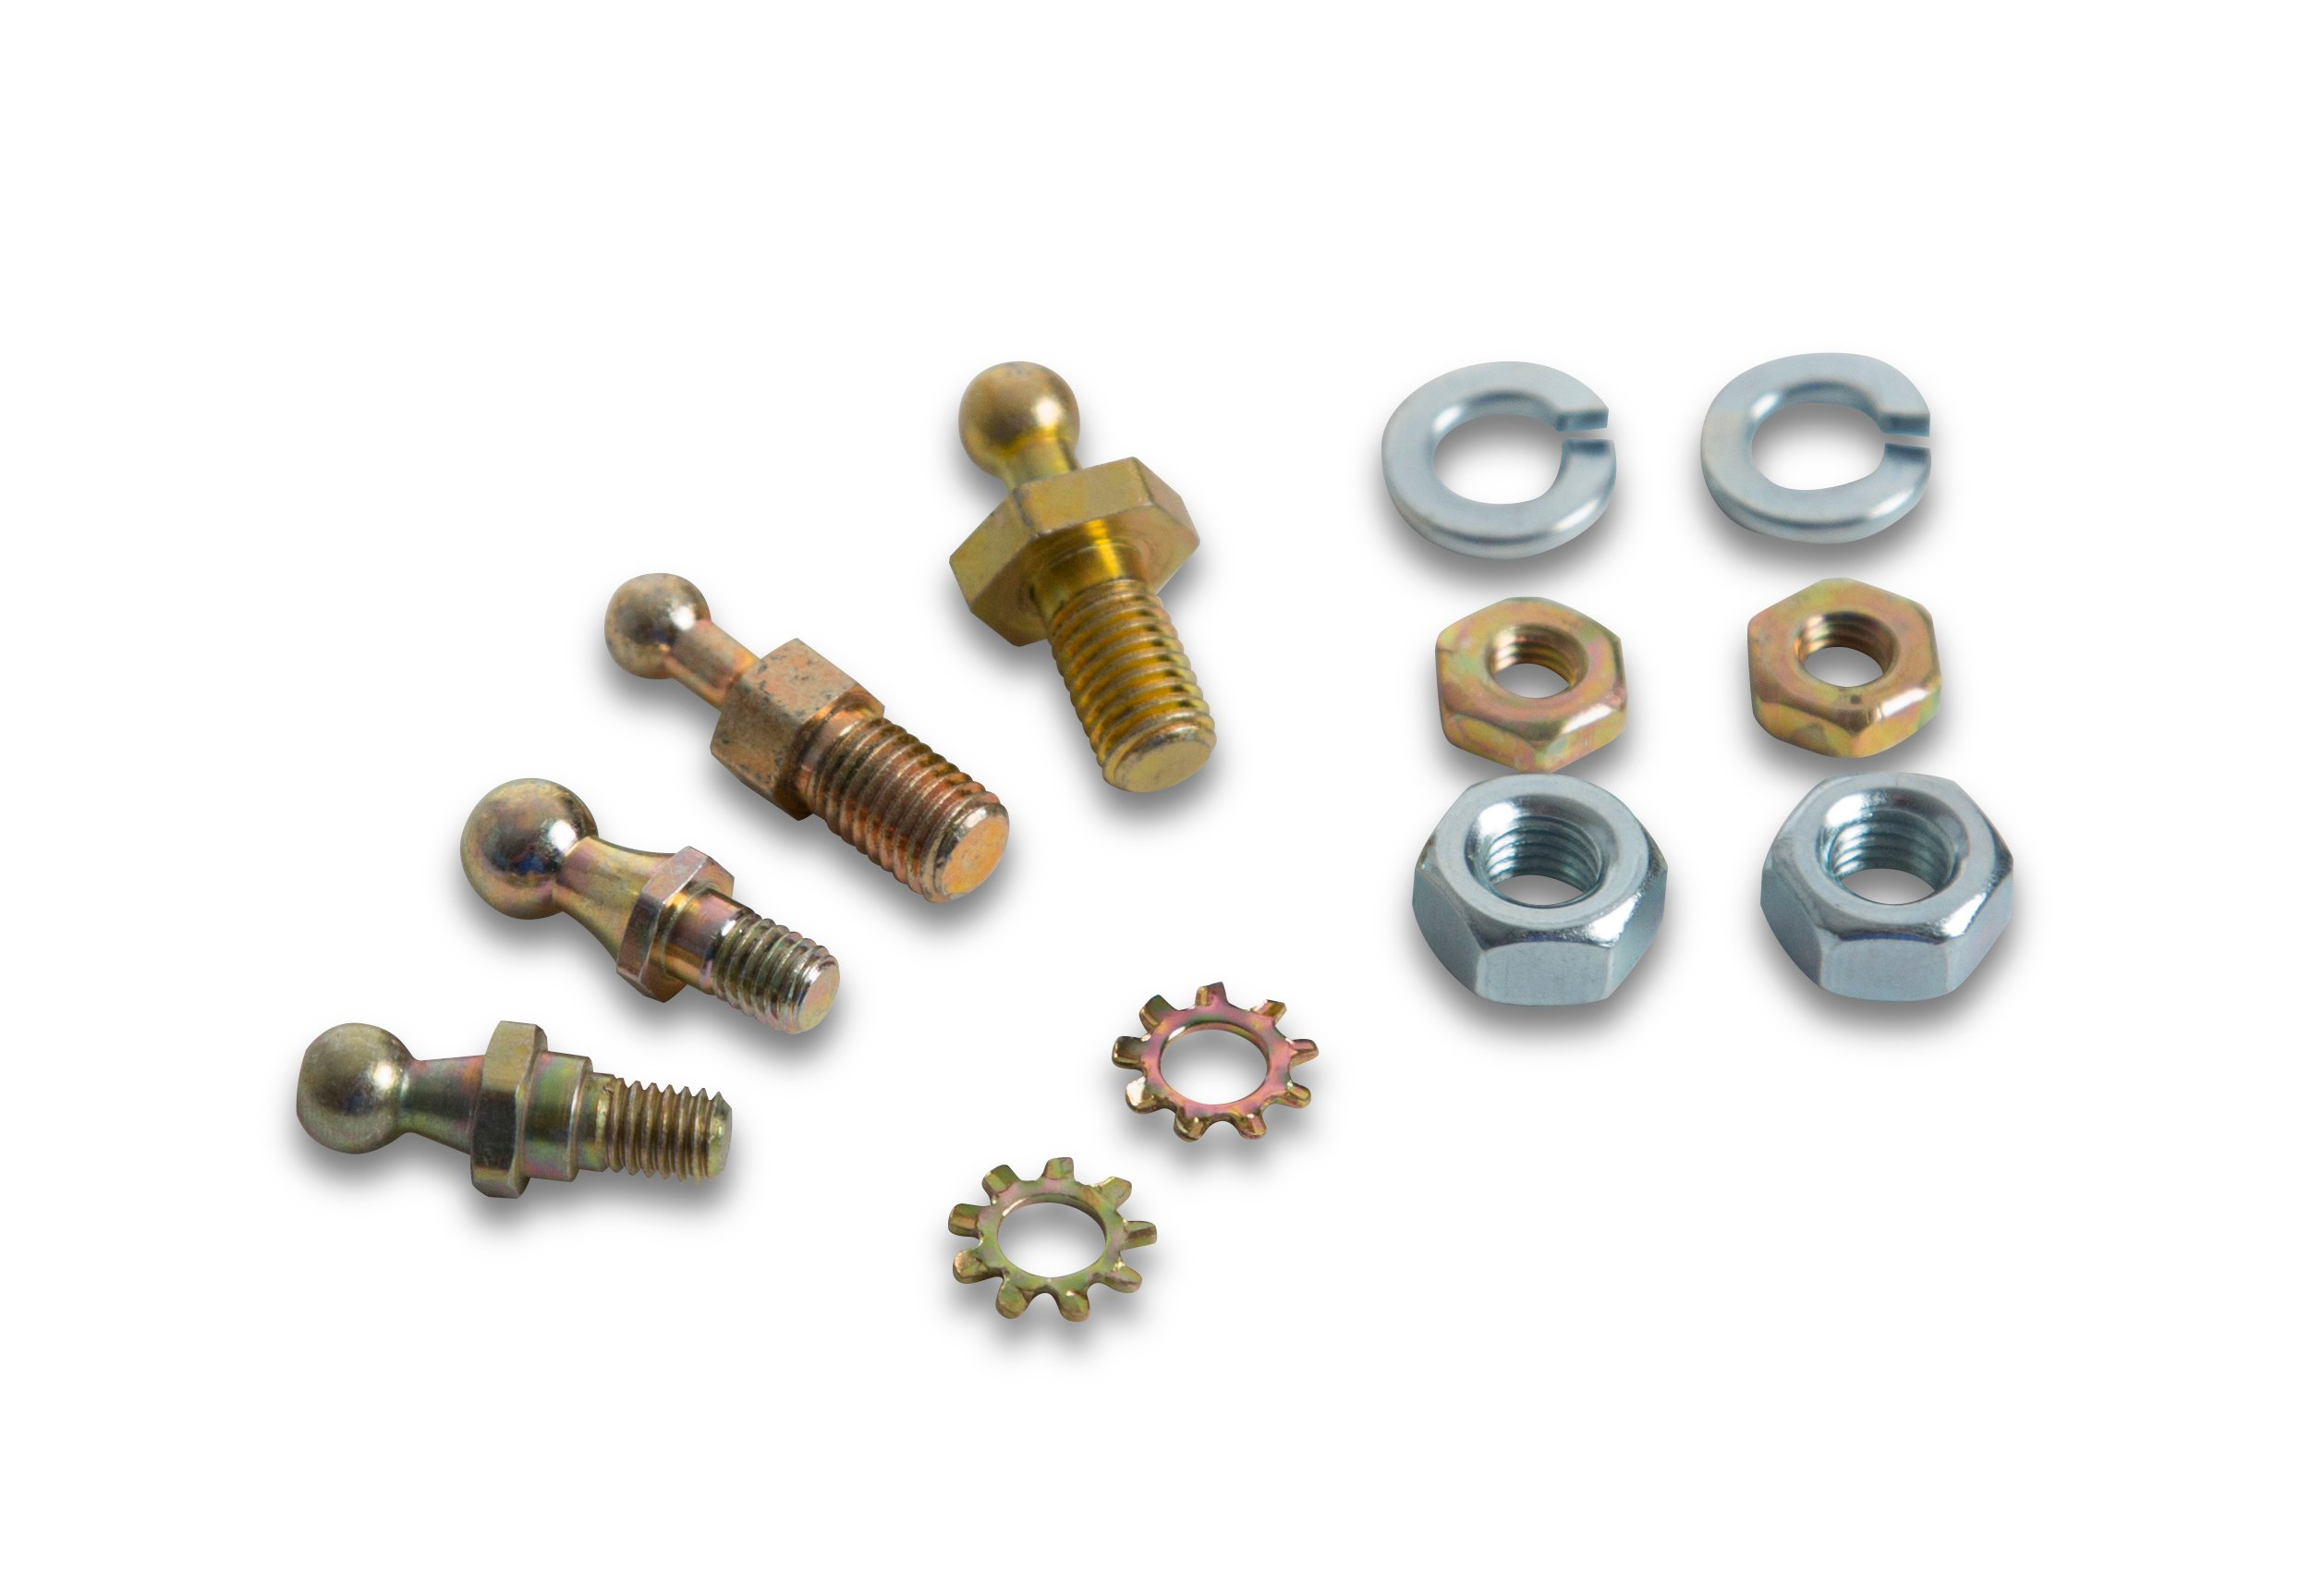 Brackets And Linkage Holley Performance Products Wiring Msd 6 Into 1978 Ford Carburetor Throttle Ball Assortment